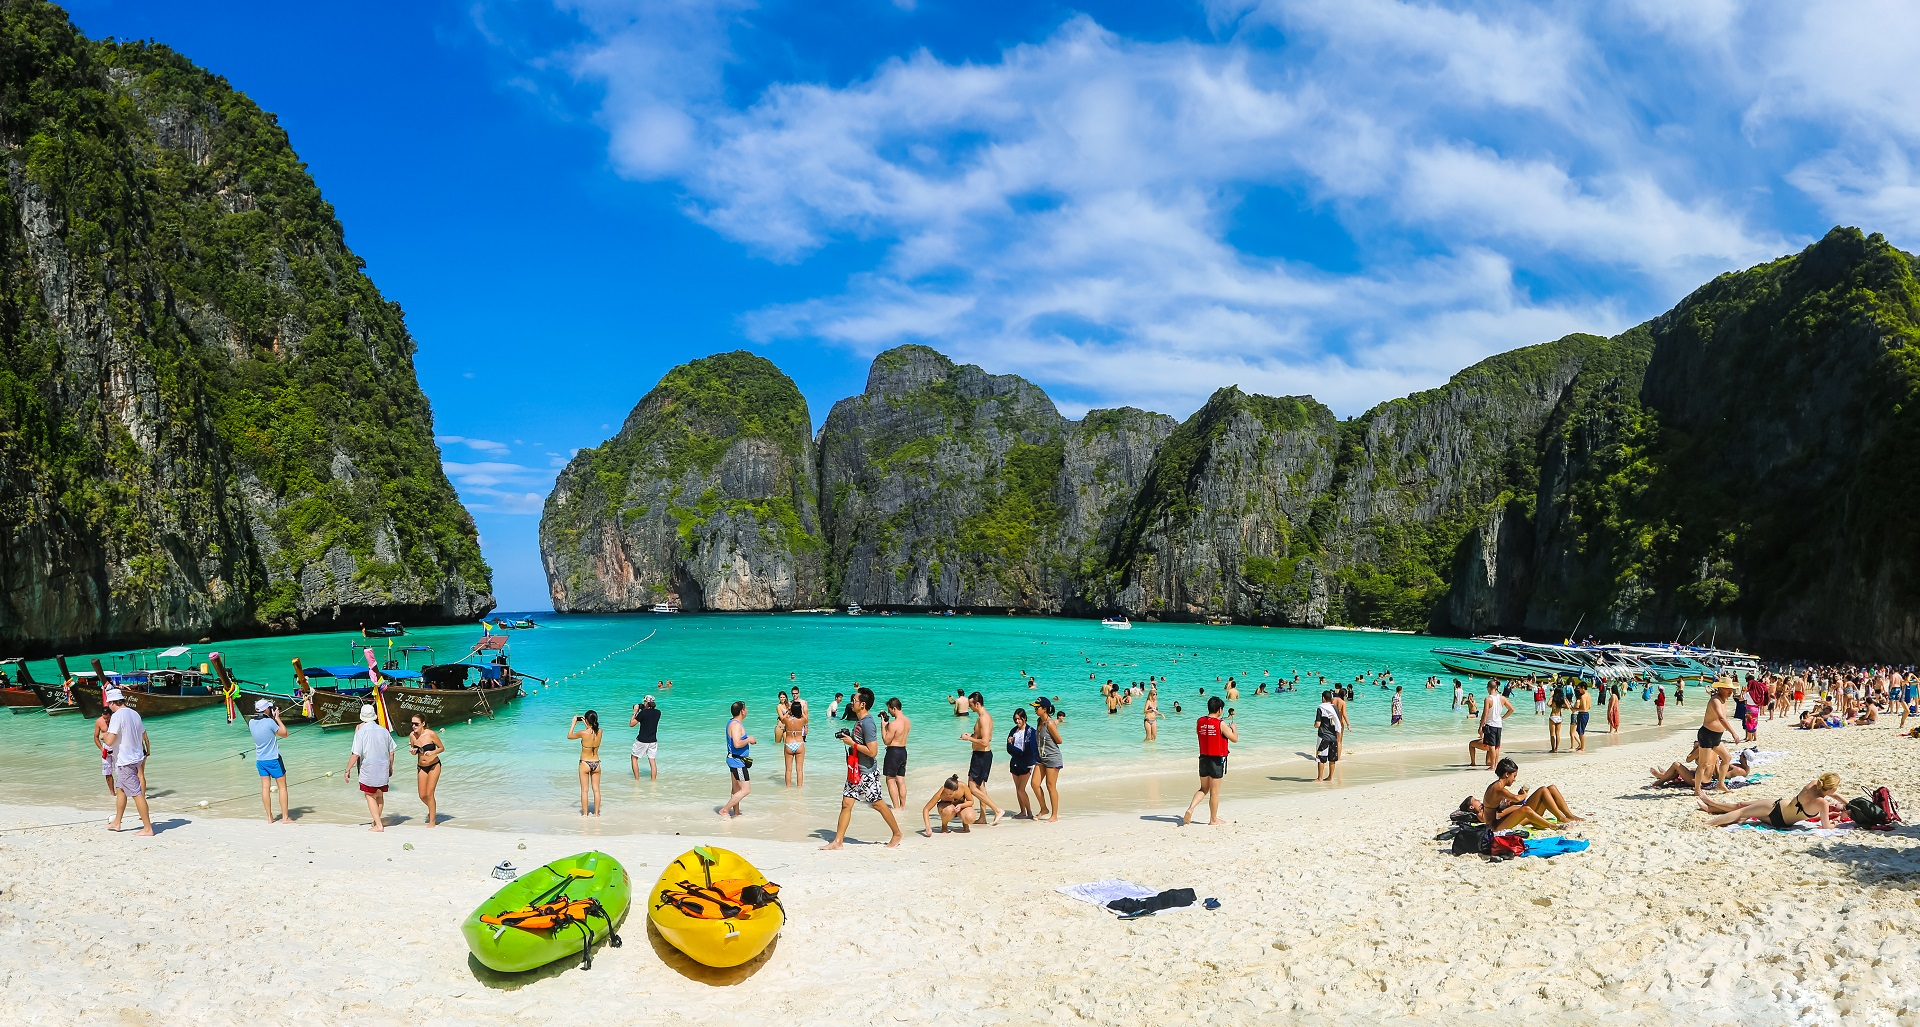 Maya Bay Sperrung, Thailand, The Beach, Ausflüge, Verbot